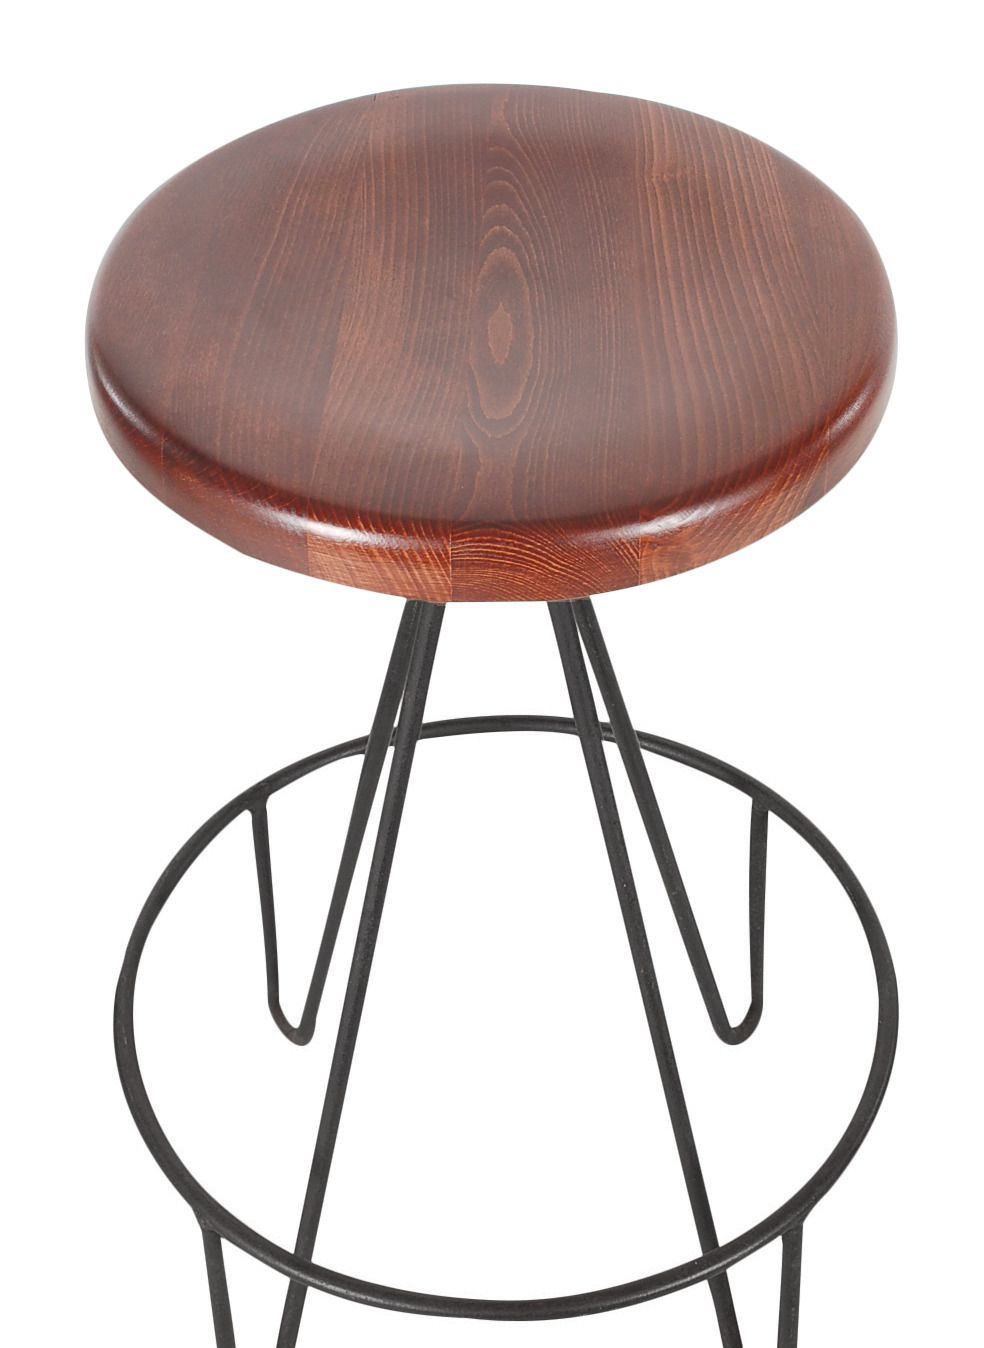 not sure if they are for the set or per stool..thinking per stool...Frederick Weinberg Iron Hairpin Leg Bar Stools | From a unique collection of antique and modern stools at https://www.1stdibs.com/furniture/seating/stools/